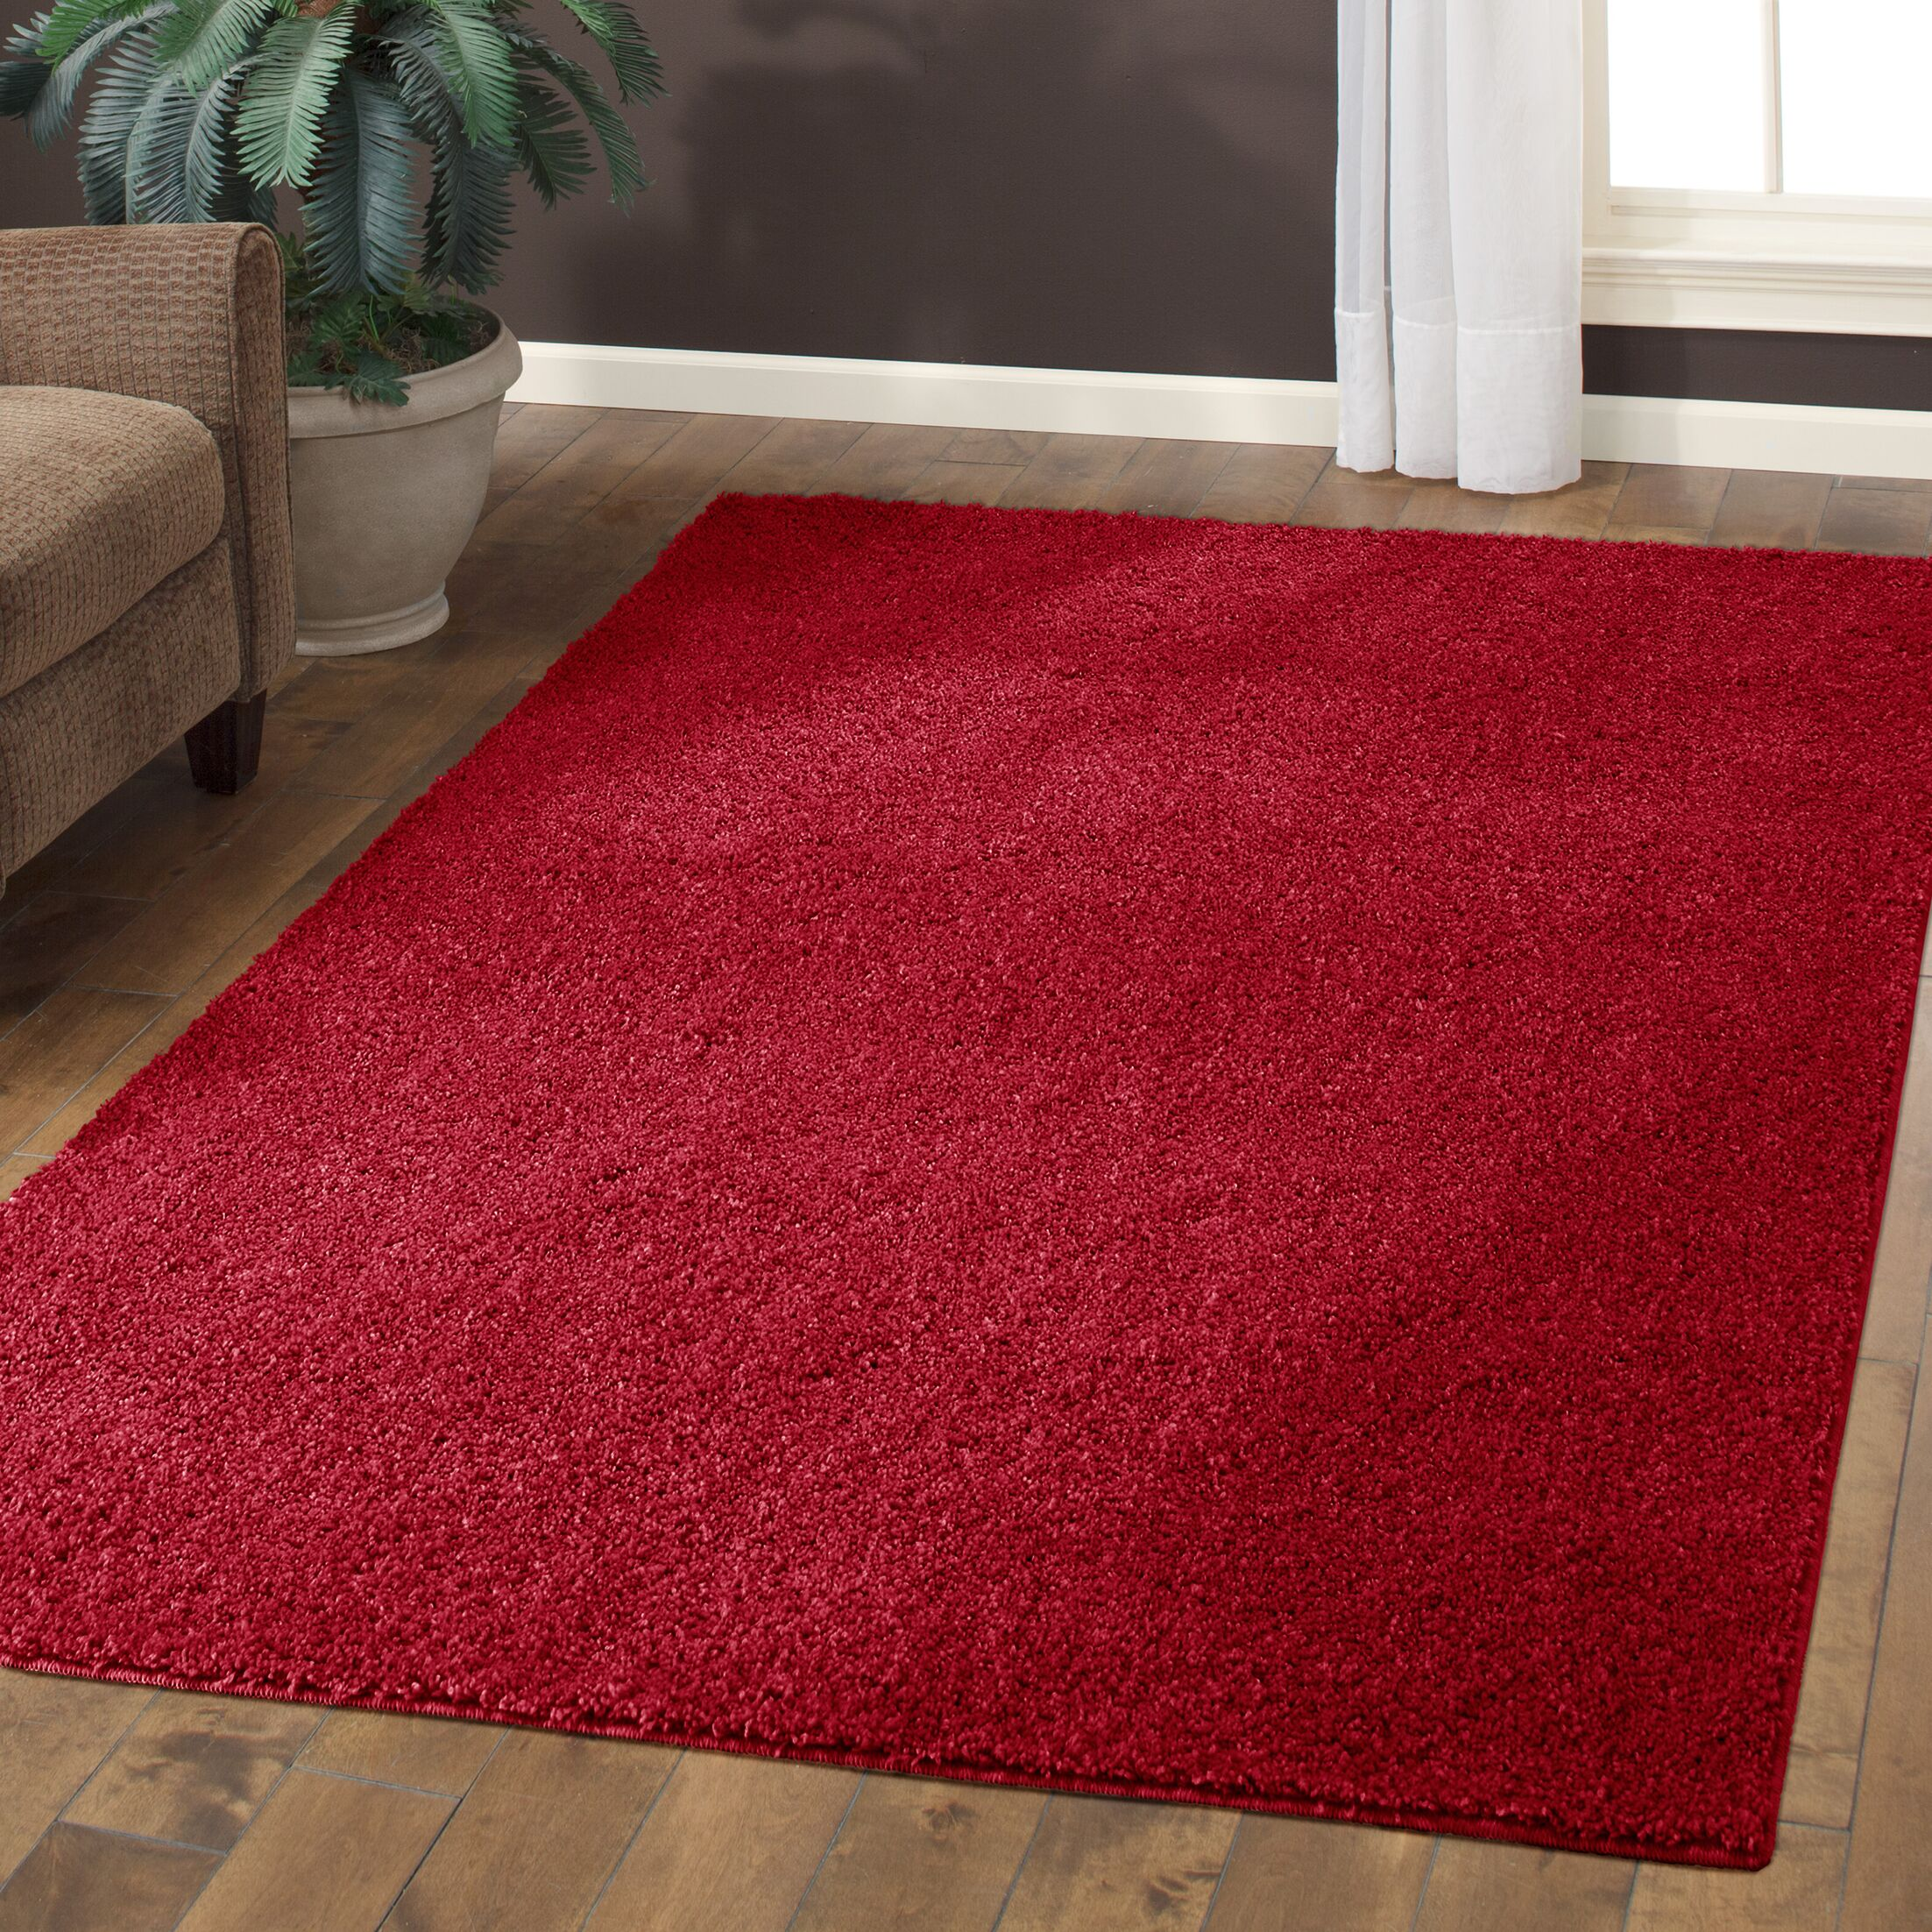 Aviles Autumn Red Area Rug Rug Size: 7' x 10'